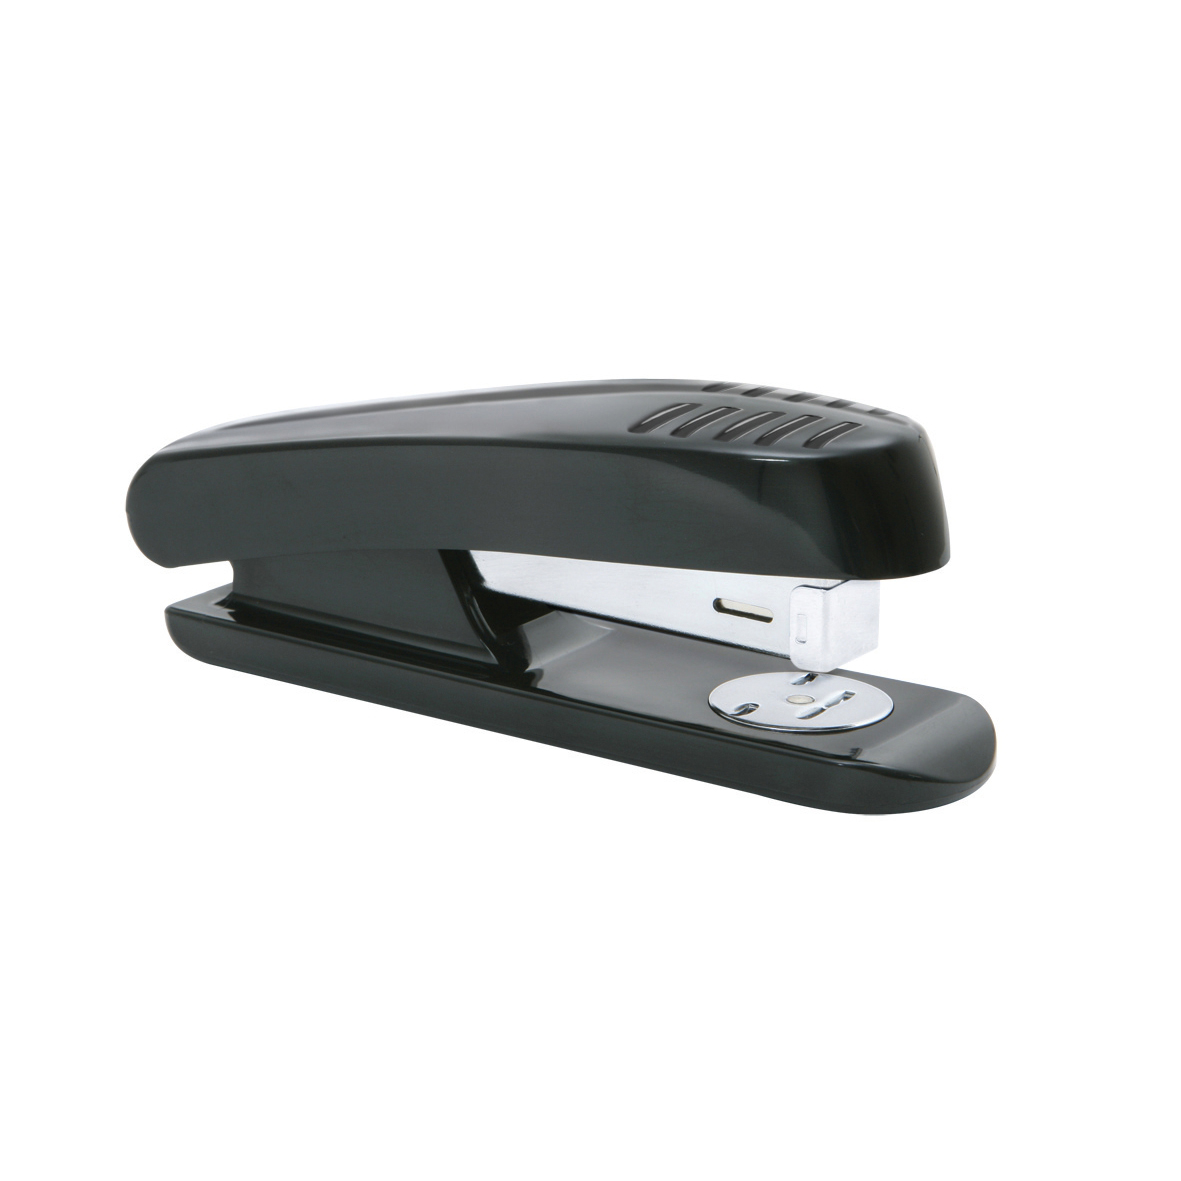 Desktop Staplers 5 Star Office Stapler Half Strip Plastic Capacity 20 Sheets Black